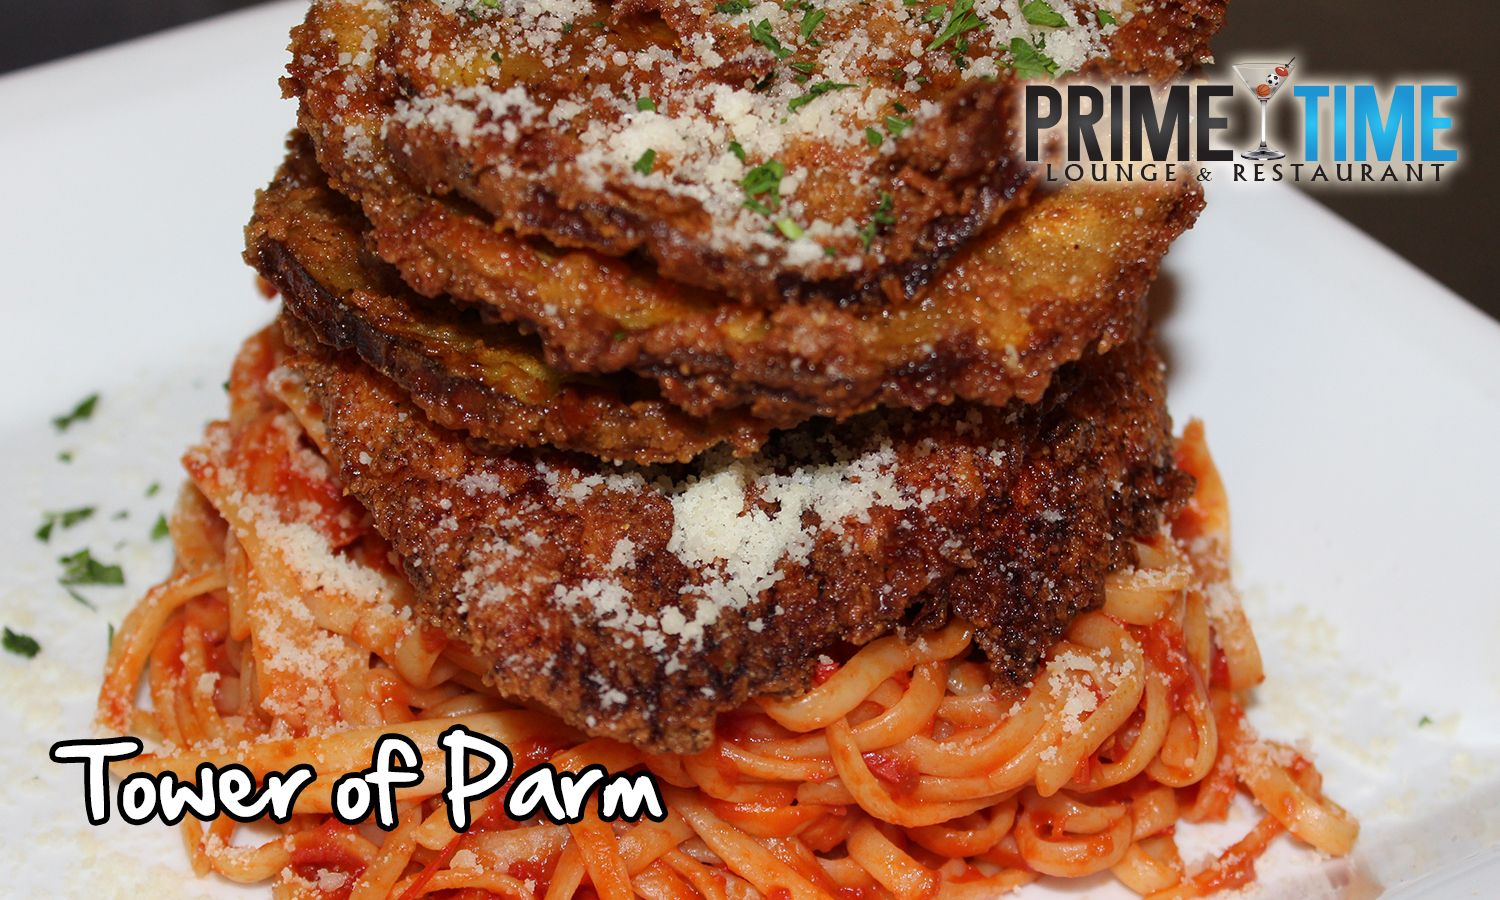 Tower of Parm